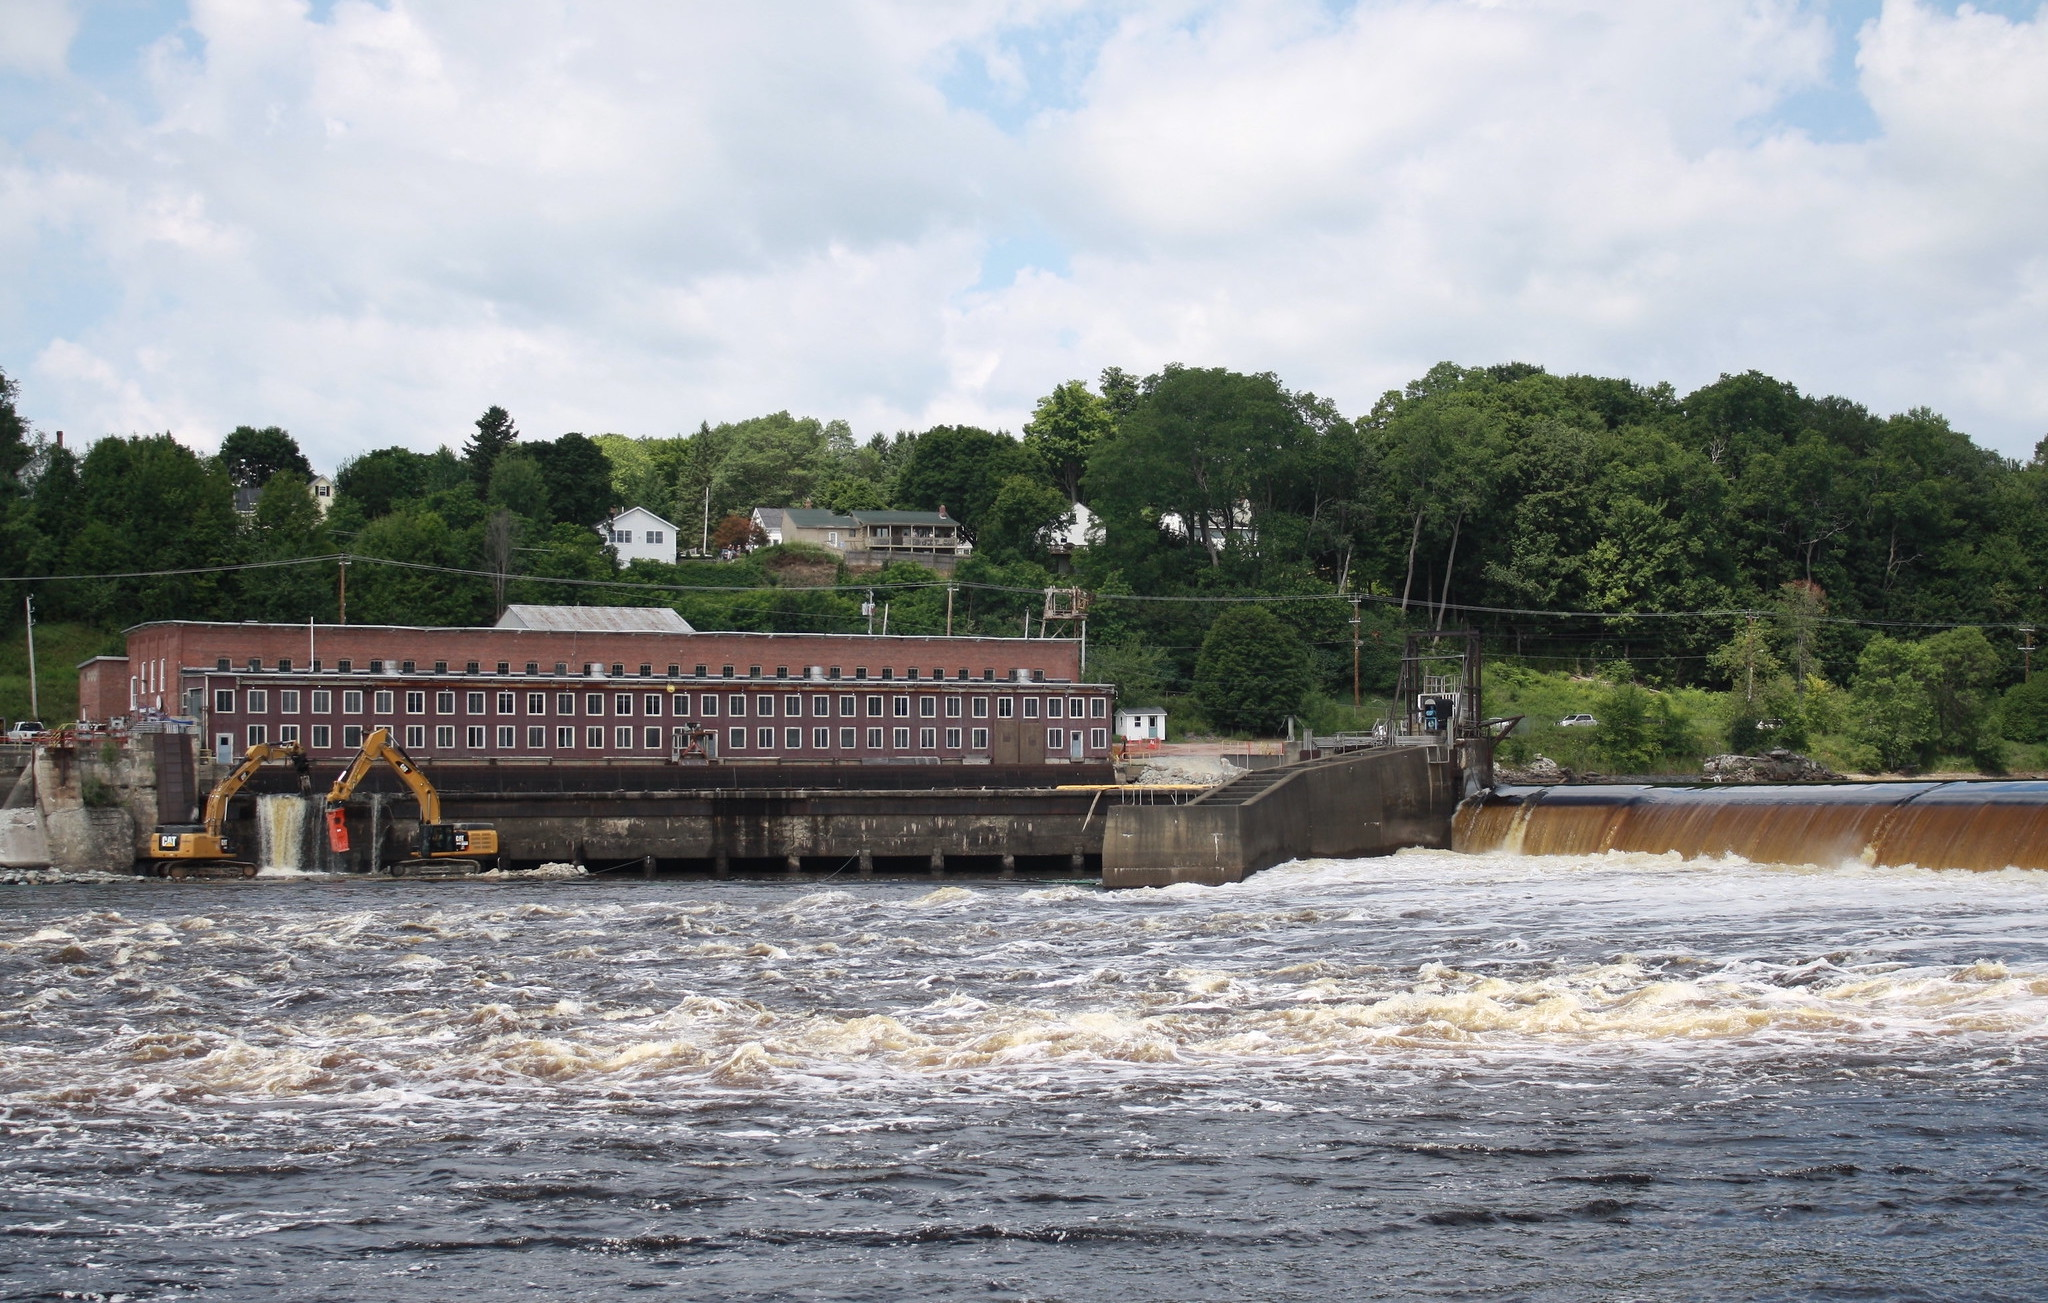 A large brick building sits on top of a big dam, with the river in the foreground. Excavators are demolishing a corner of the dam.